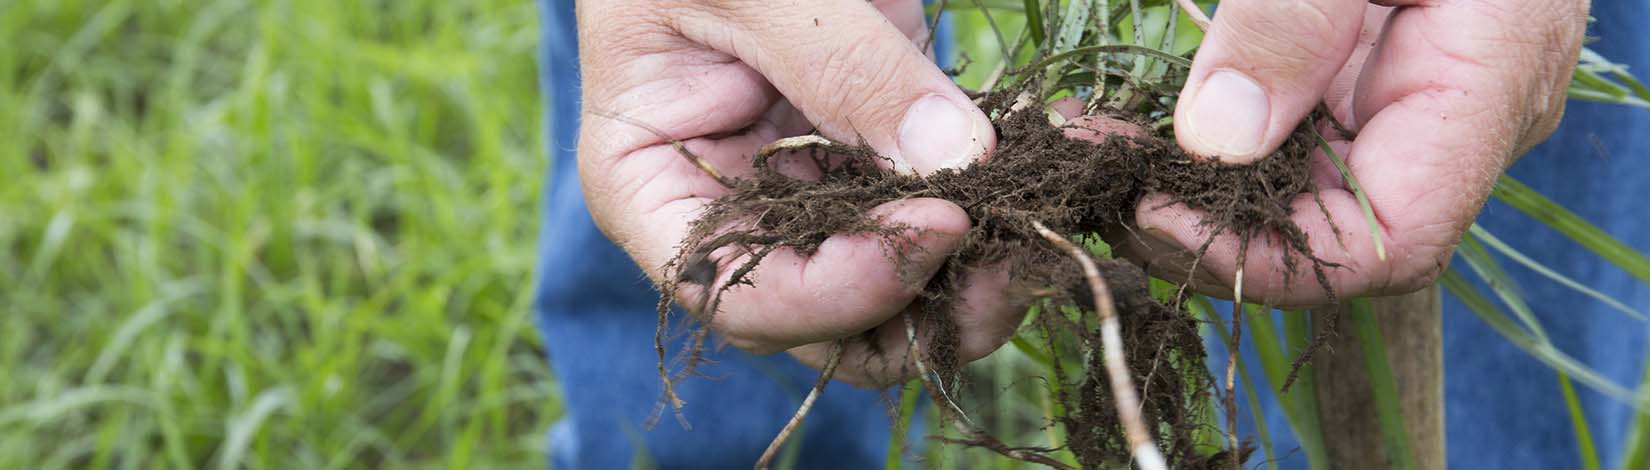 Hands holding plant roots while organic gardening